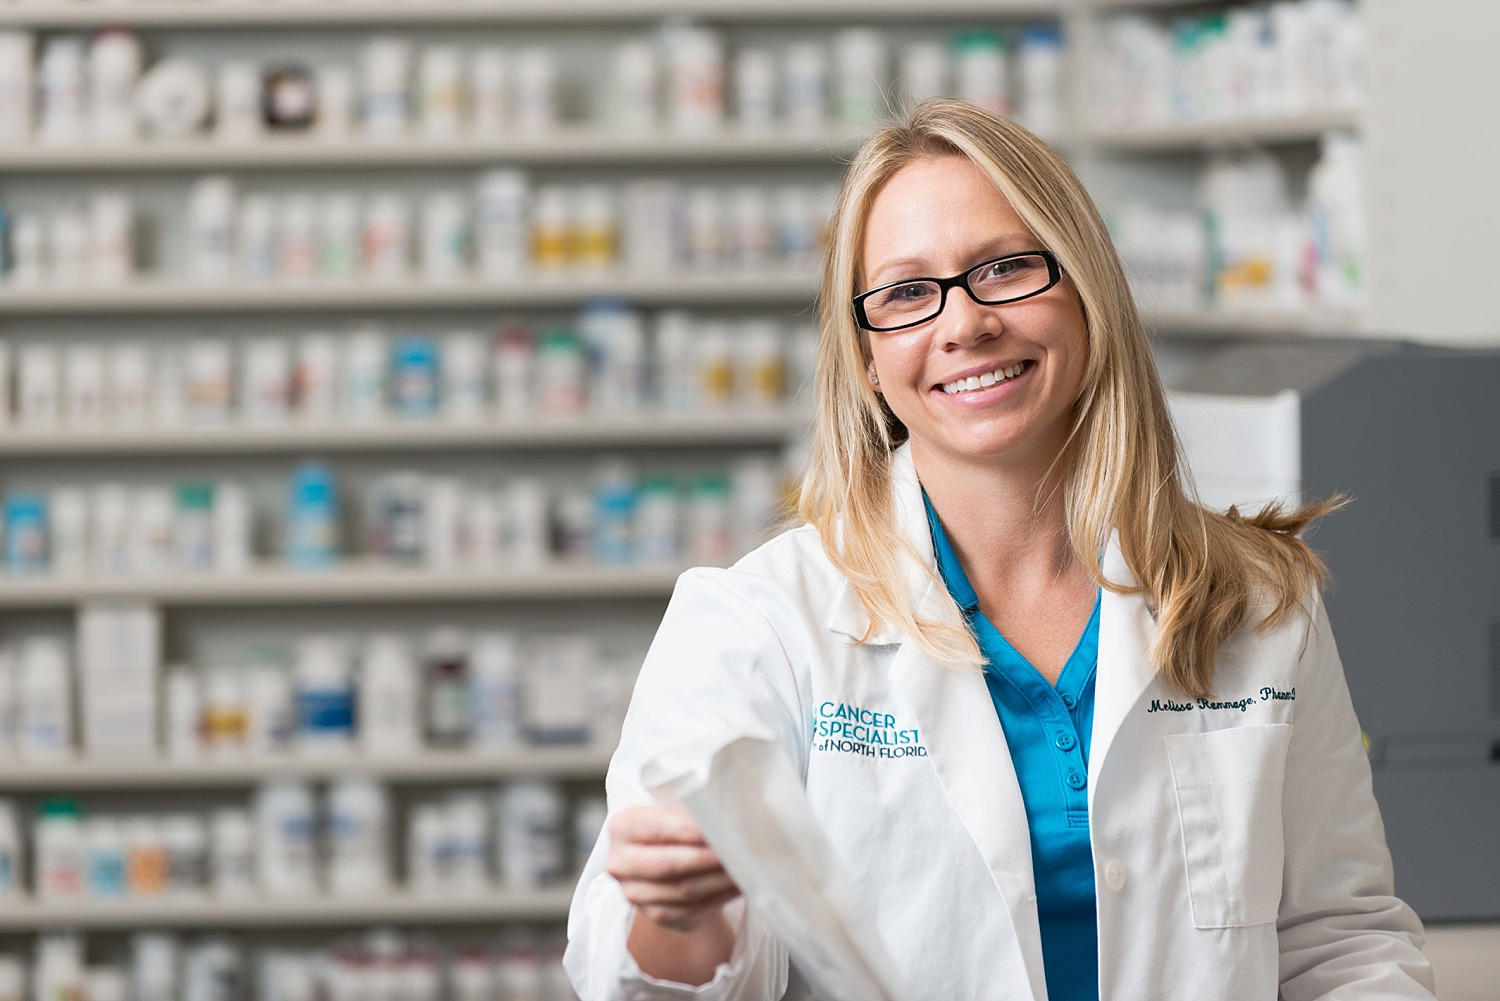 Medical Industry Professional Commercial Photography